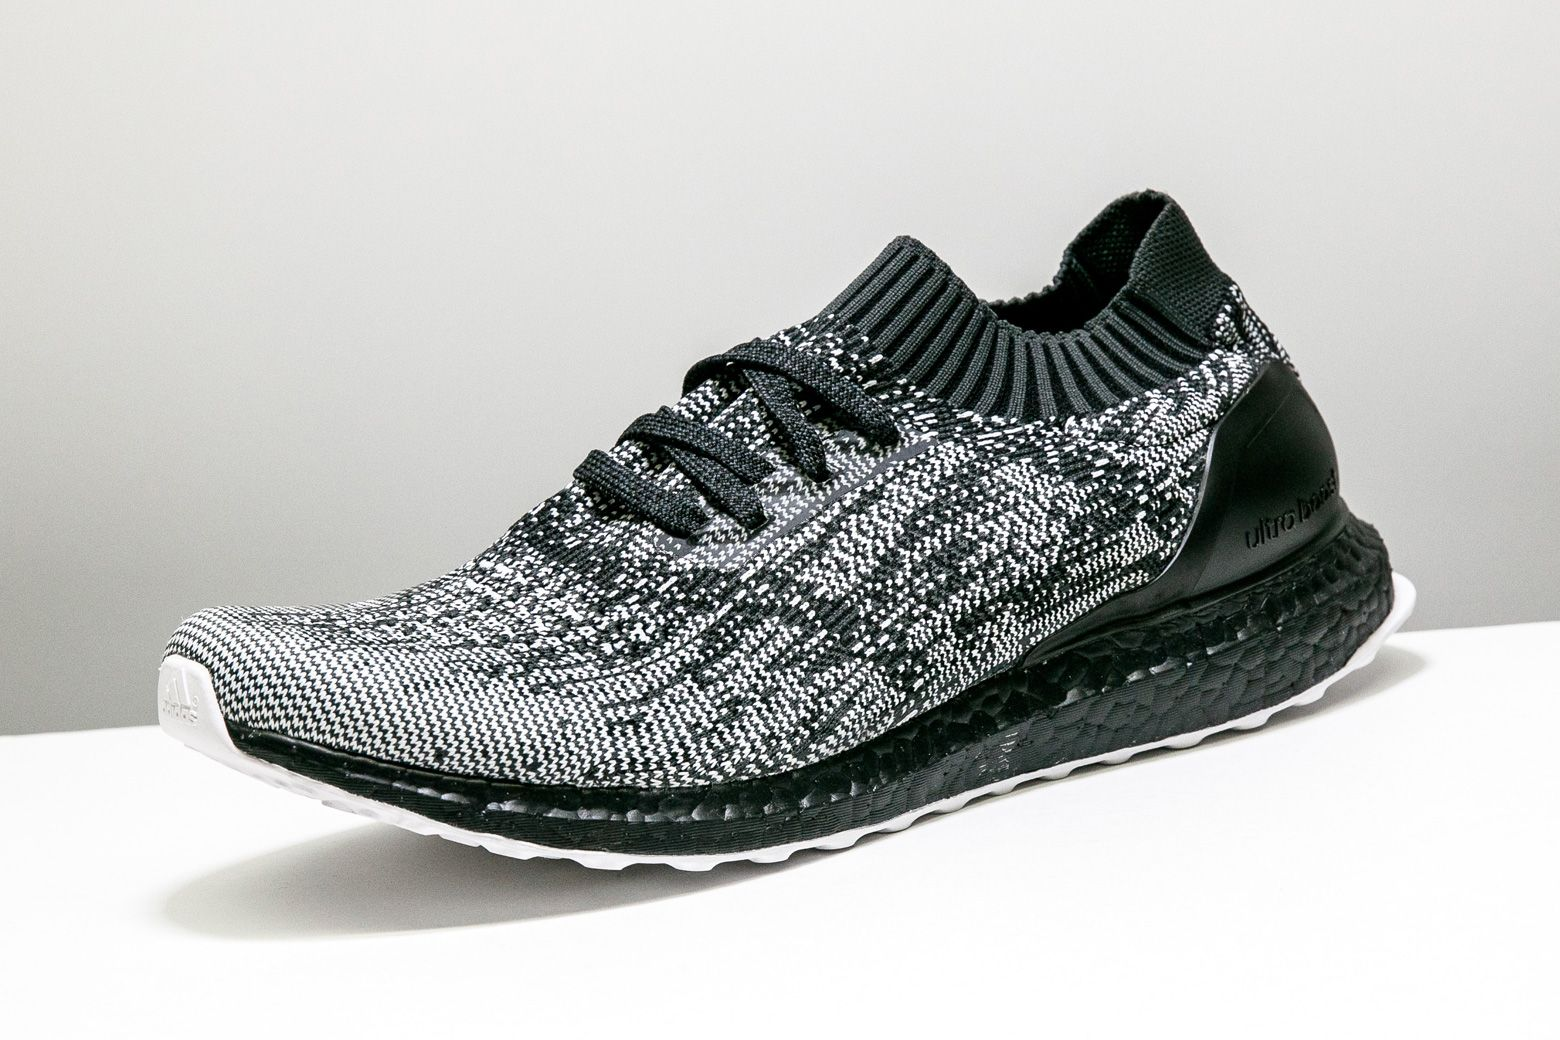 cbc5a018491 The Ultra Boost Uncaged returns in a clean black and white color scheme  with a glitch